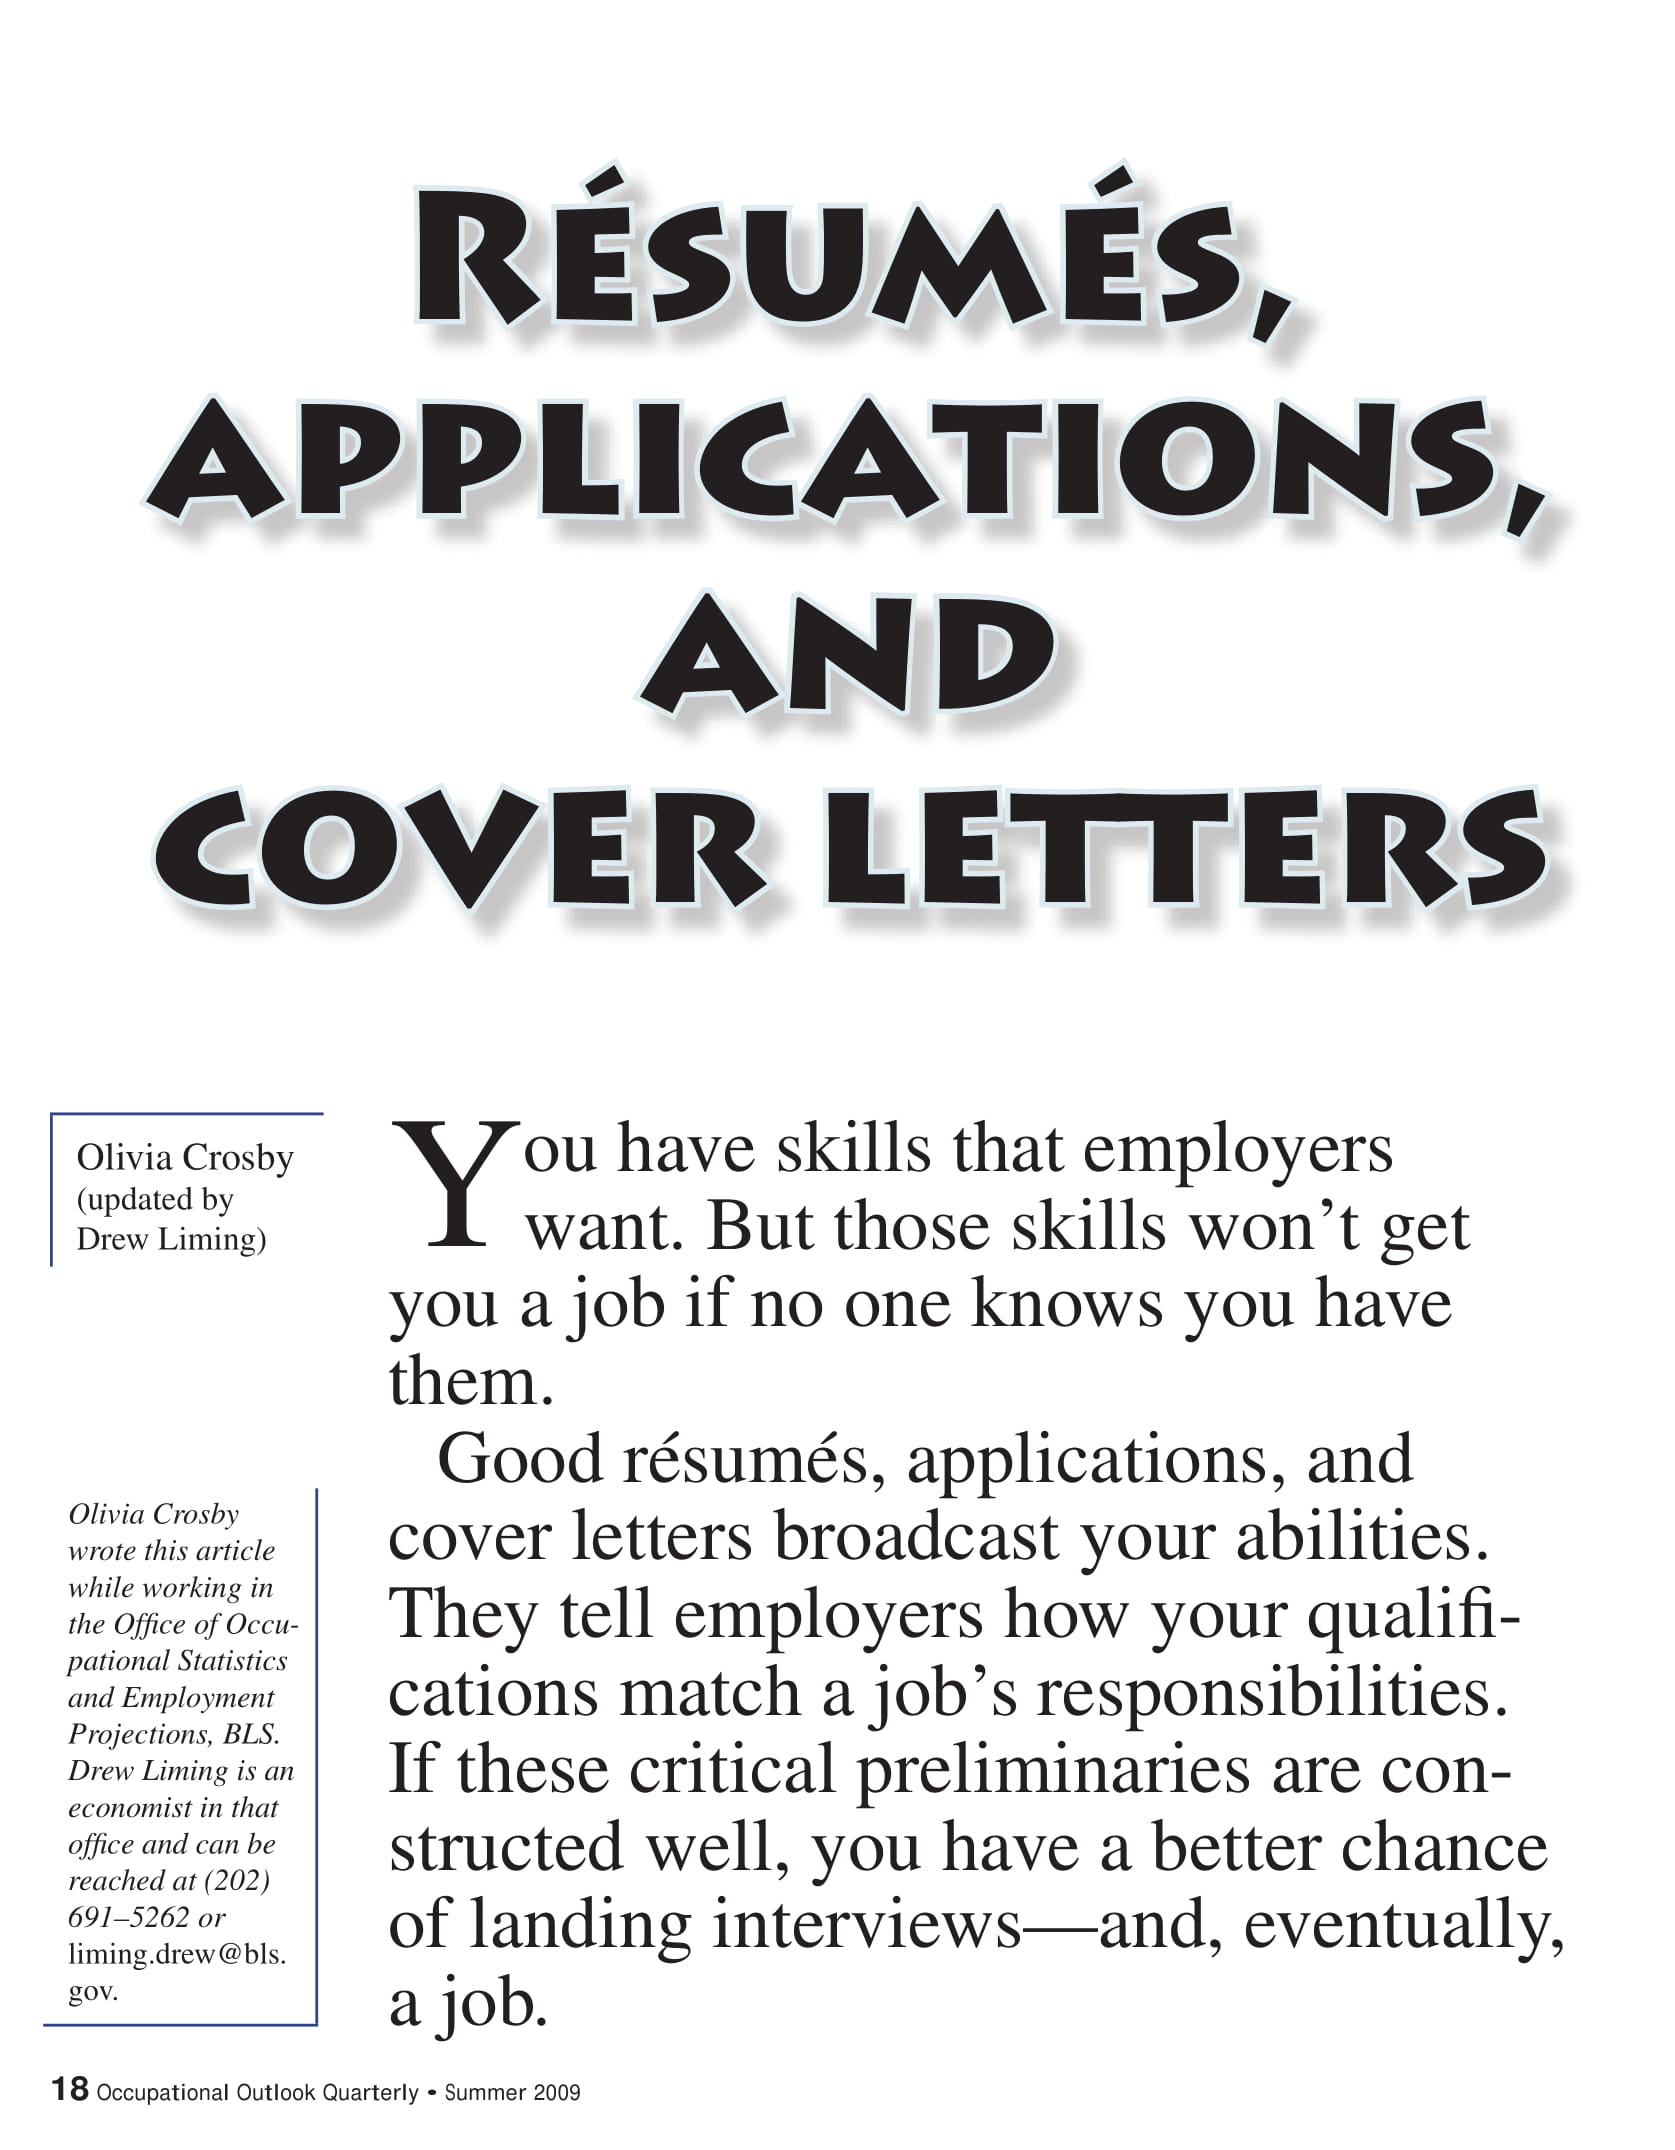 resumes application and cover letter example